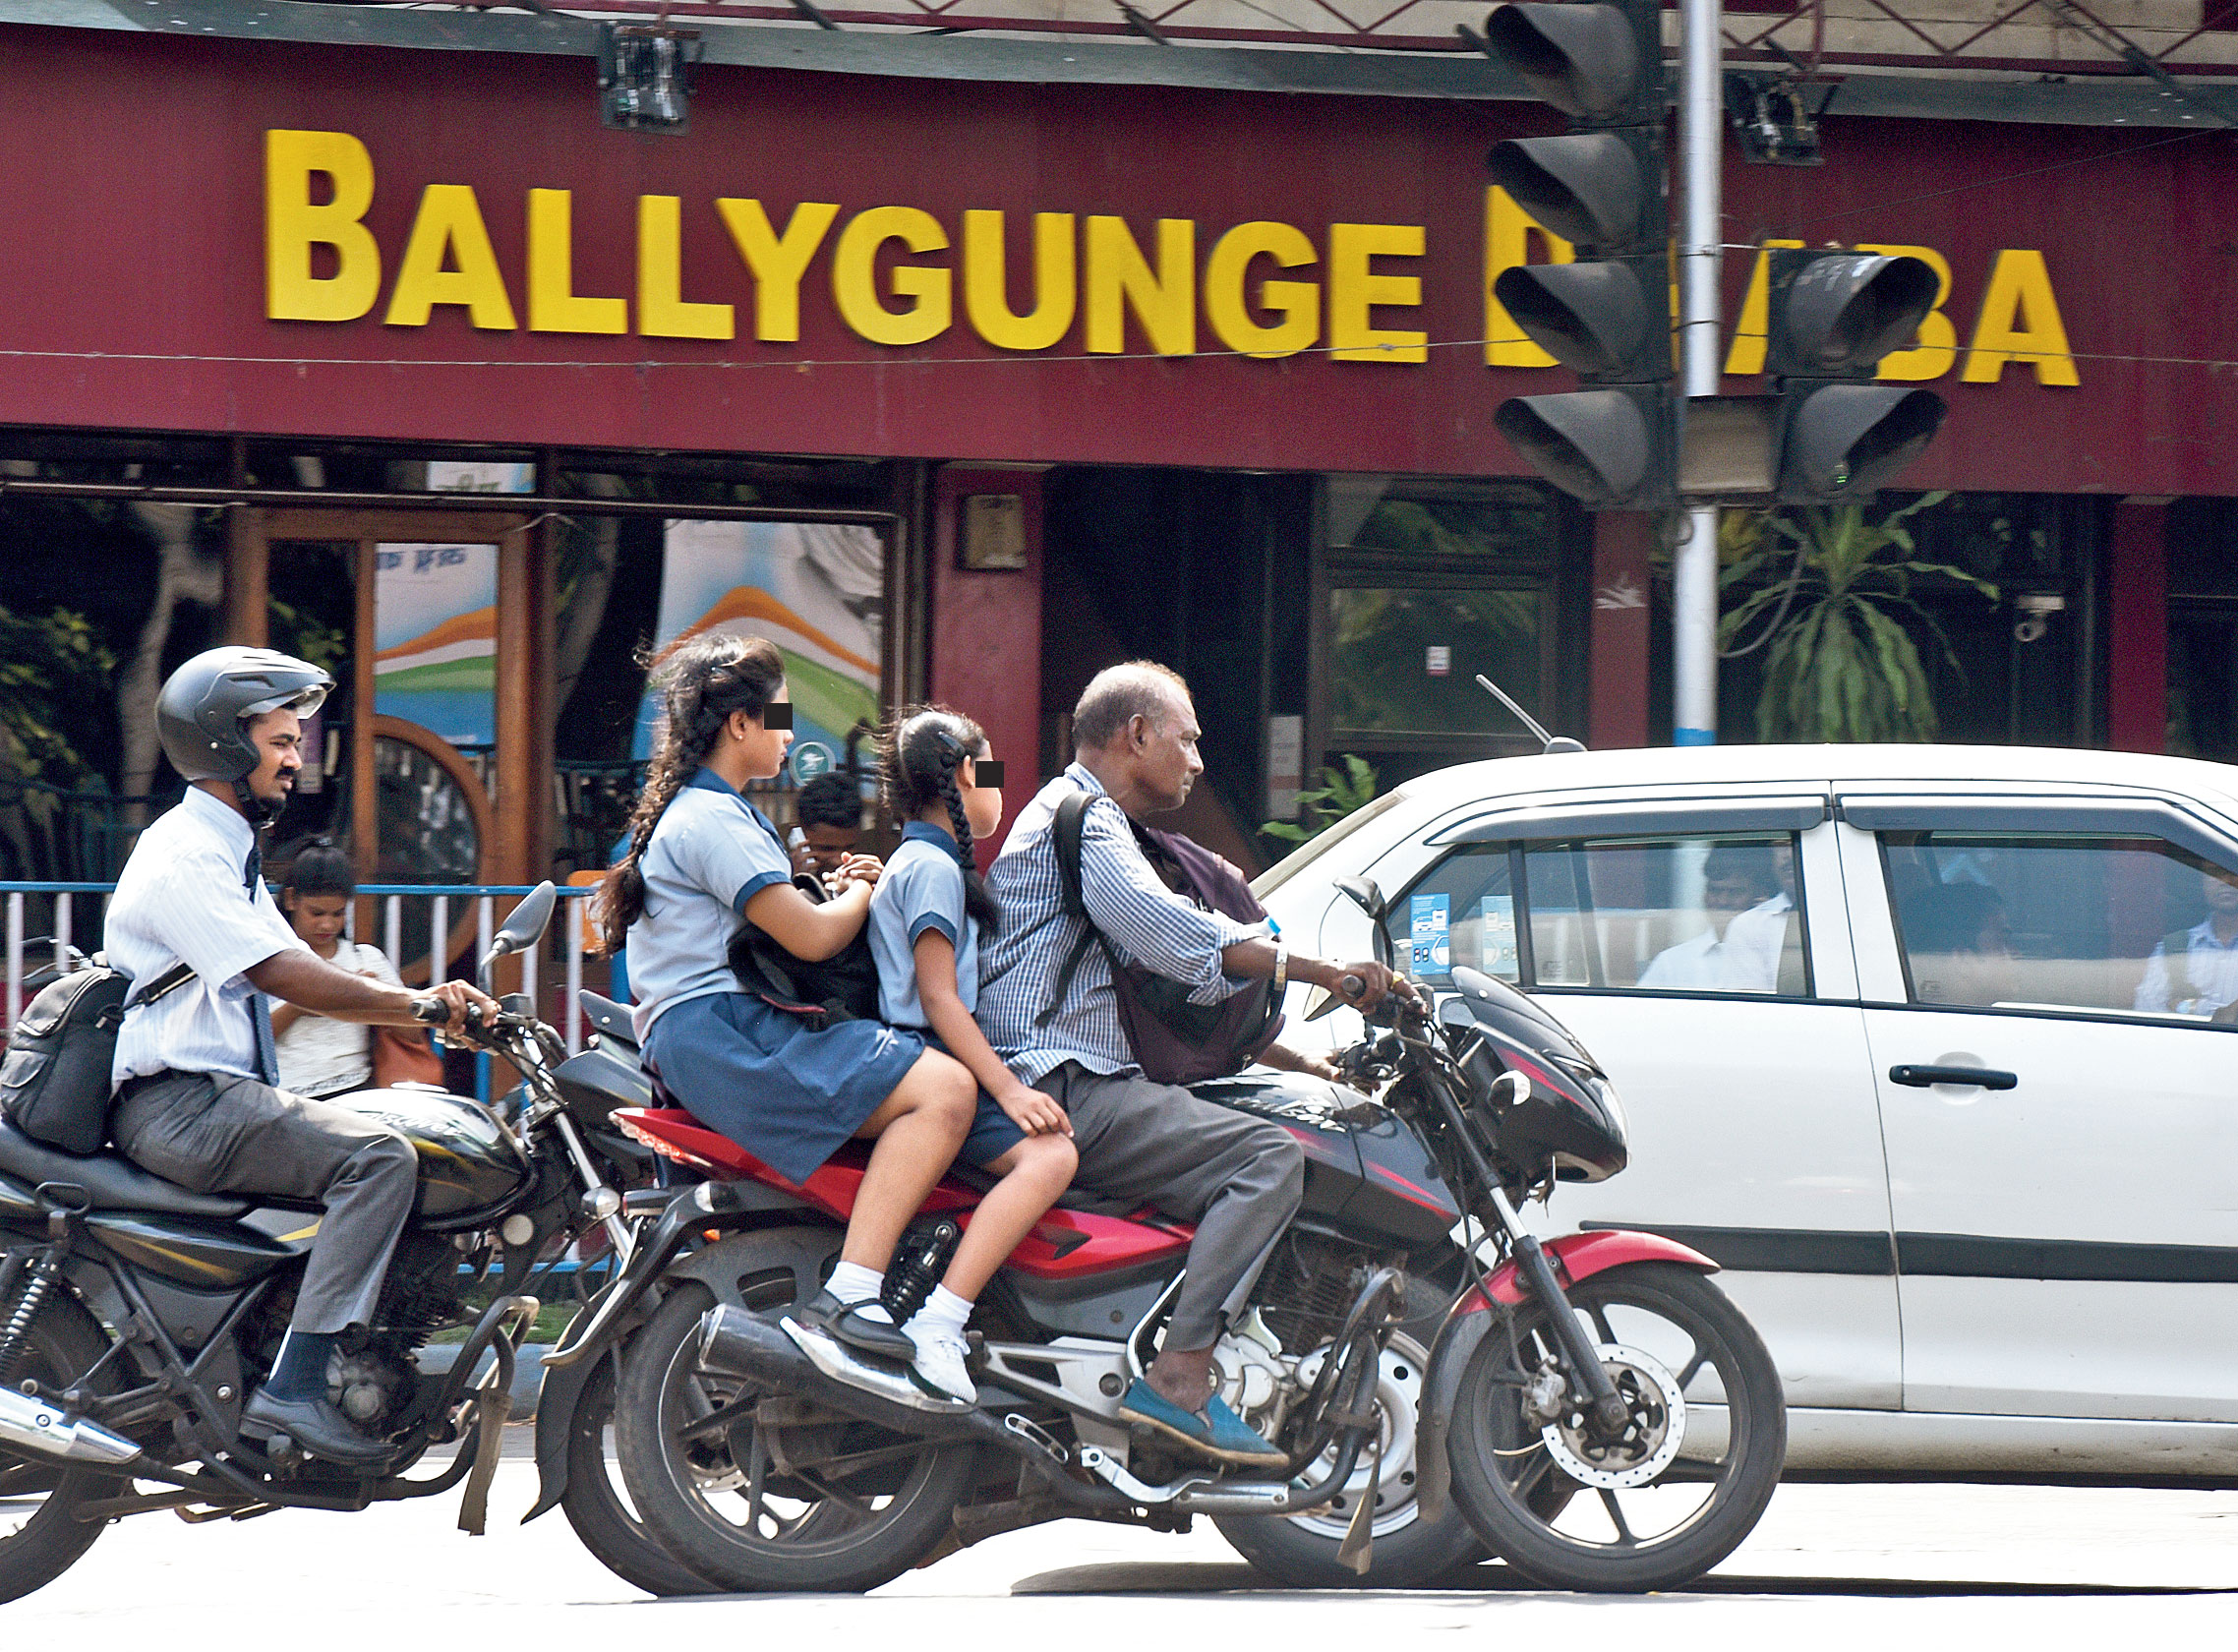 A man rides past Ballygunge Dhaba with two girls in school uniform on the pillion. None was wearing a helmet.